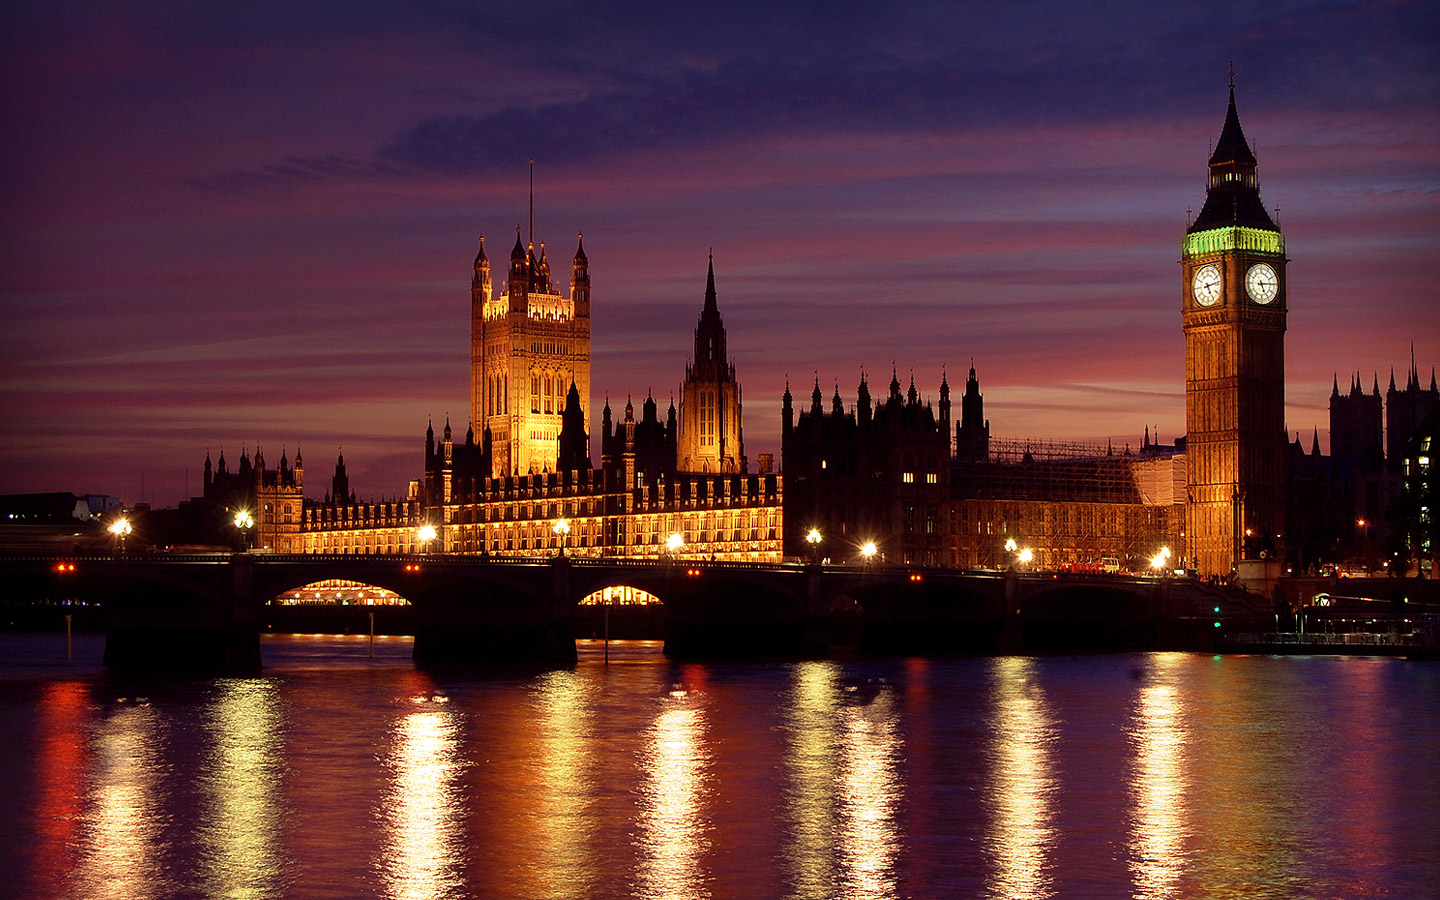 Need Legal Advice? Contact Your Nearest Solicitors In London Right Away!